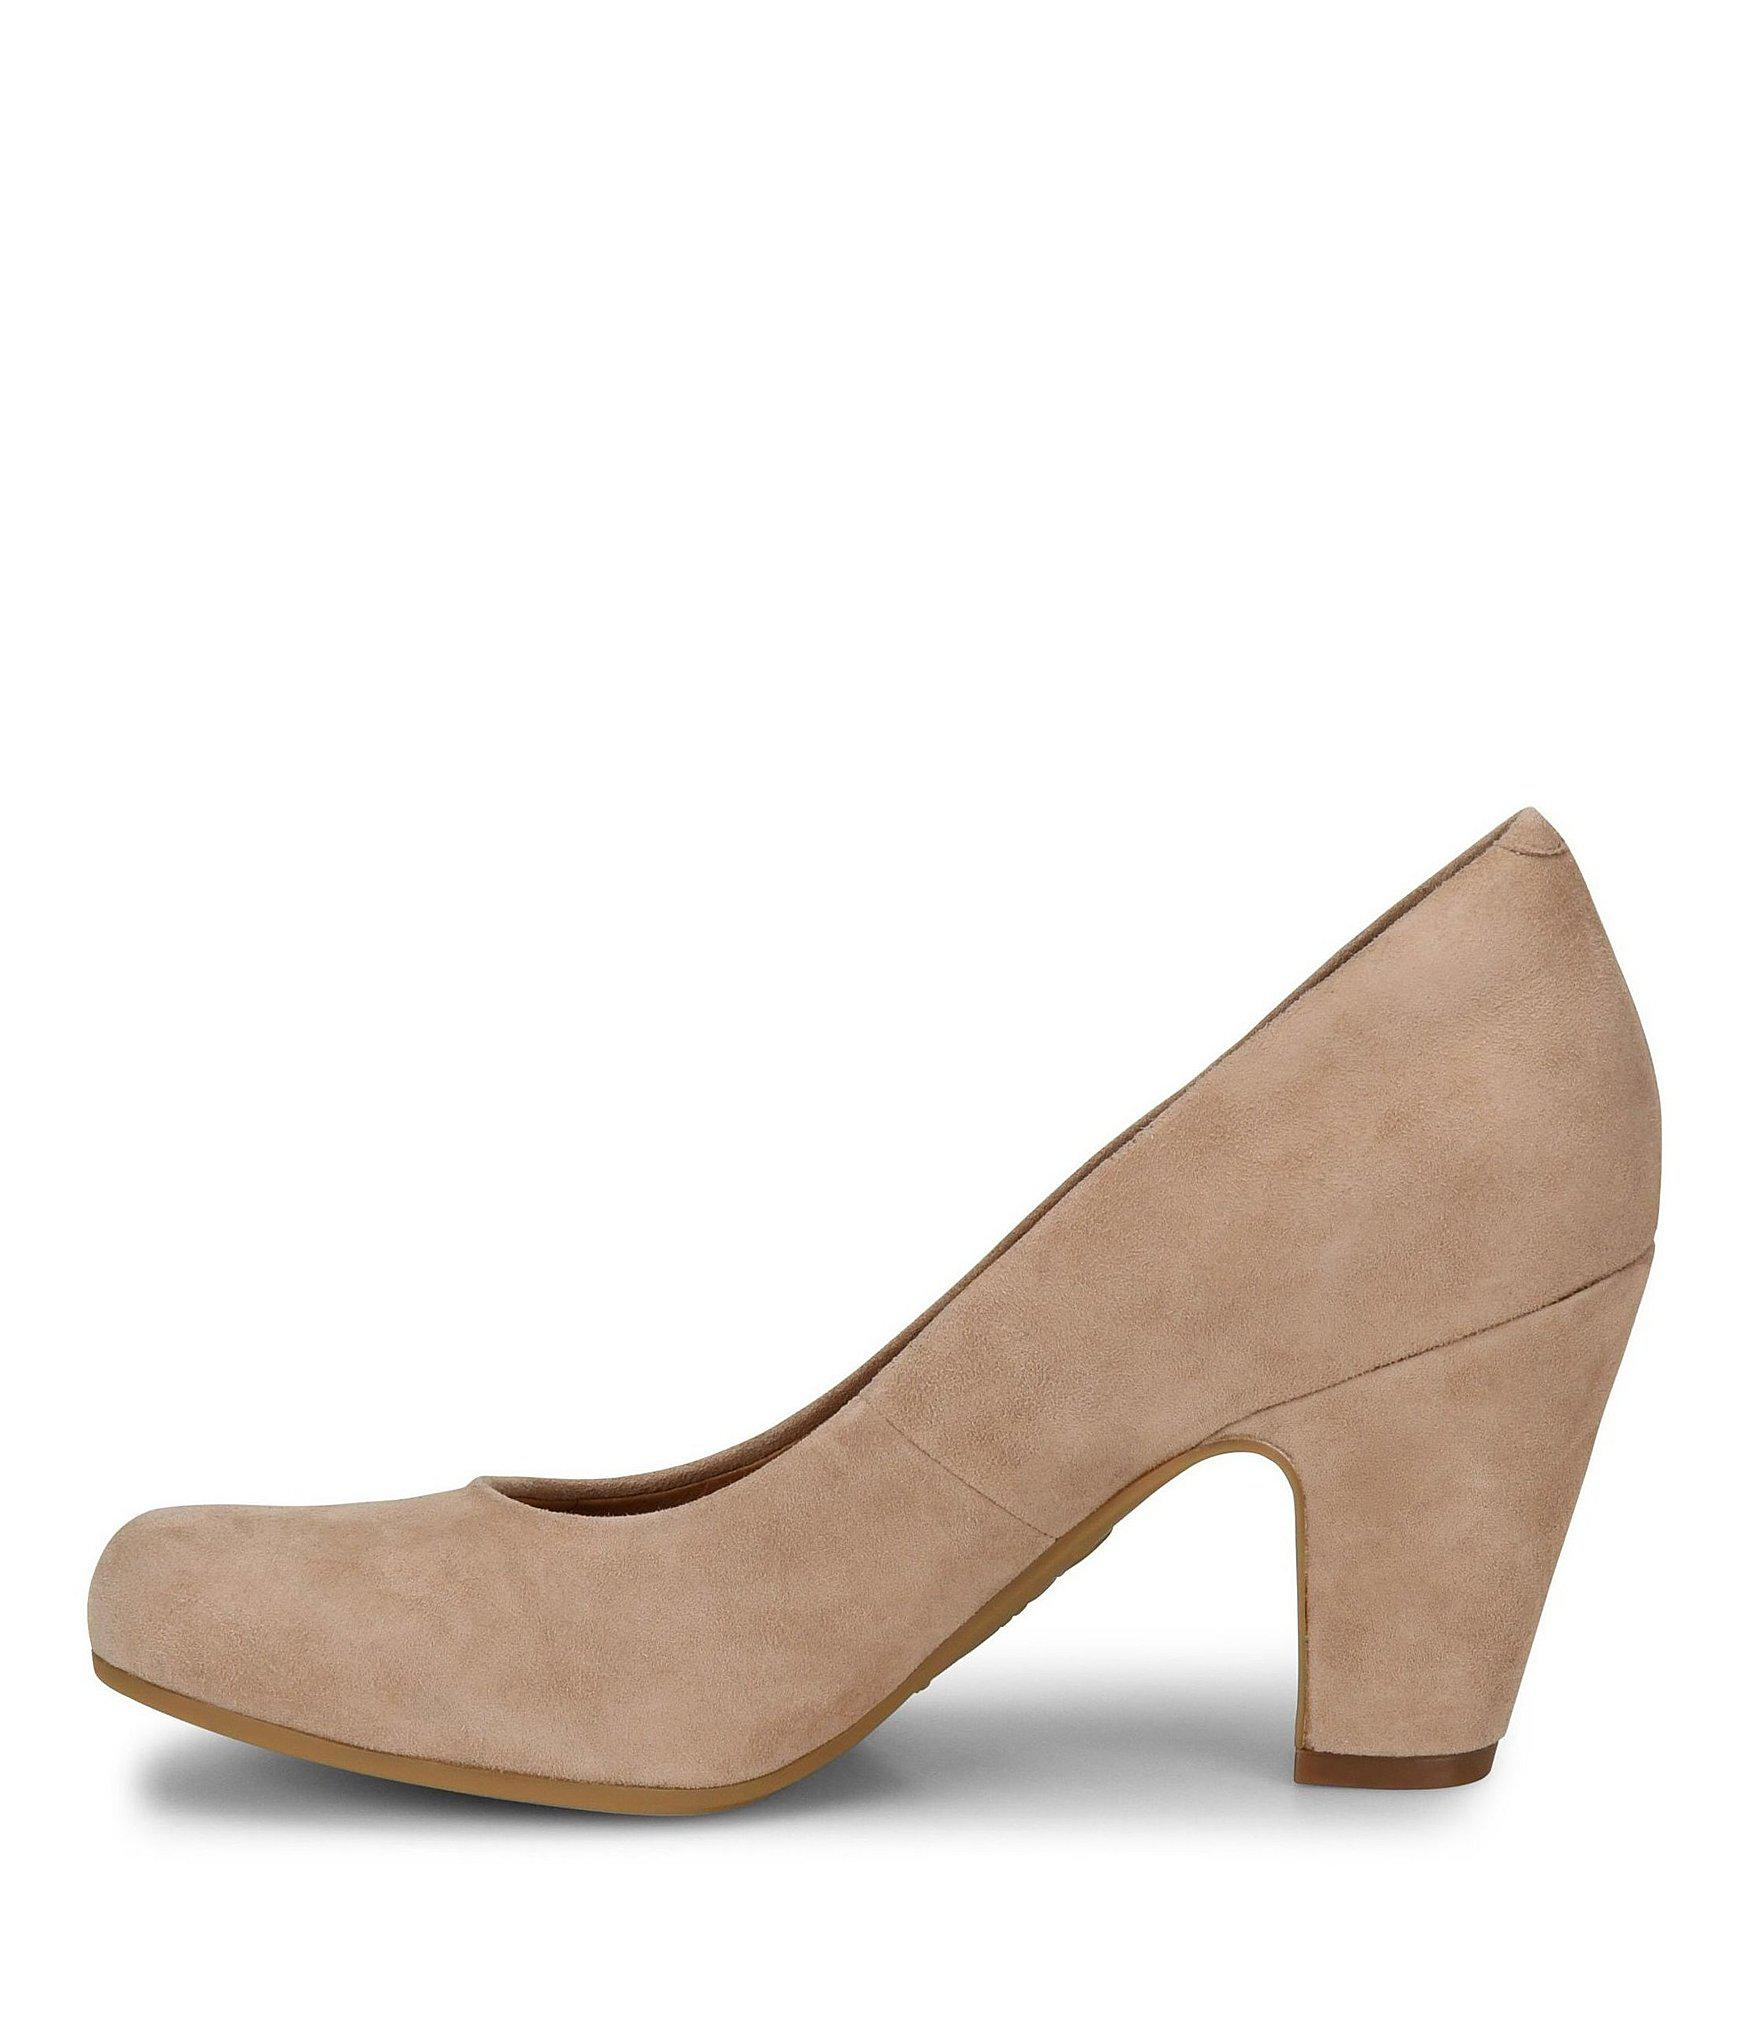 c3929708193f ... Suede Block Heel Pumps - Lyst. View fullscreen